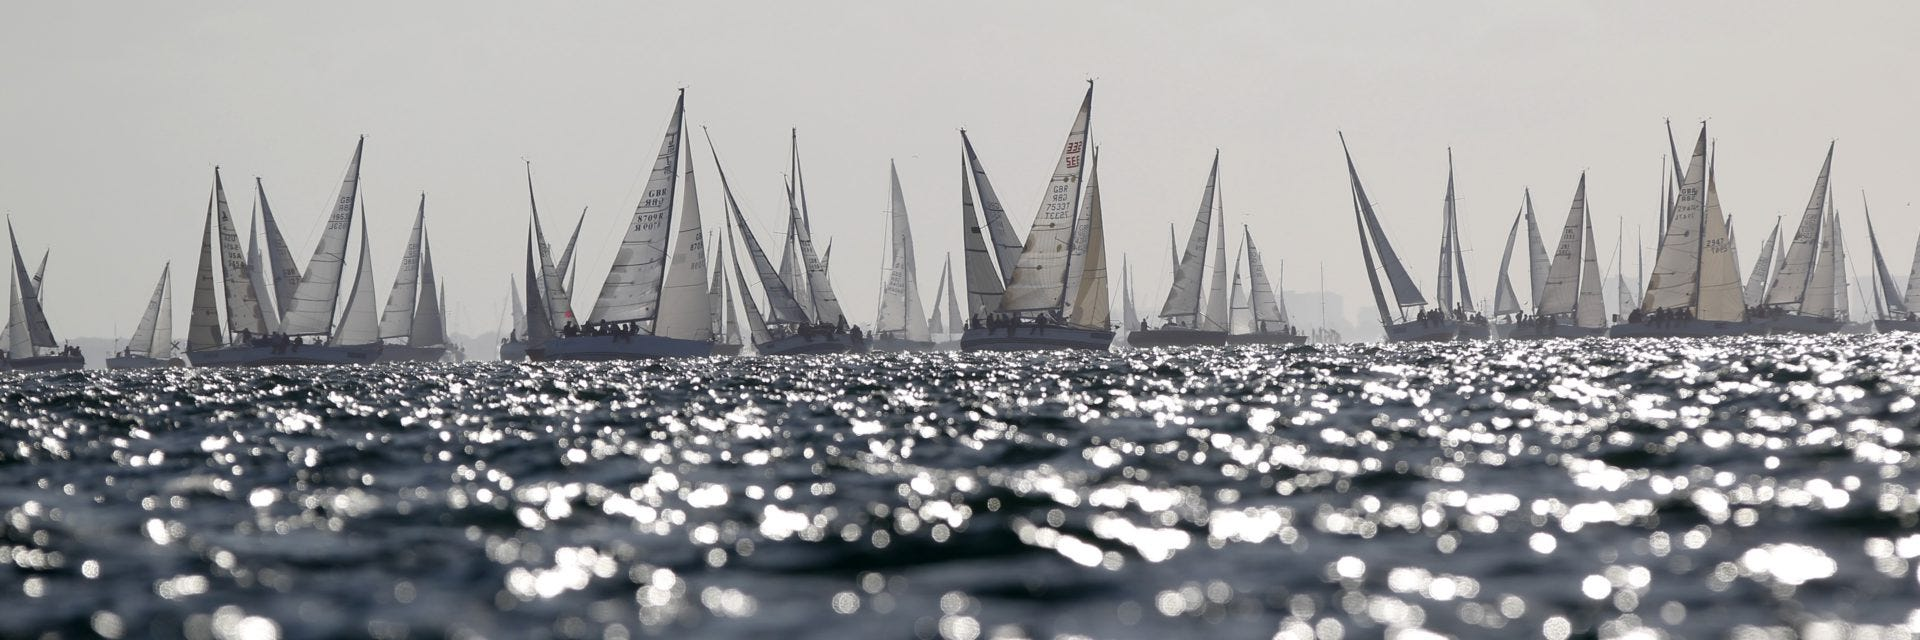 5ab4eb4ccf Organized by the Island Sailing Club, the Round the Island Race is a famous  one-day sailing event, attracting more than 1,600 boats with more than  16,000 ...